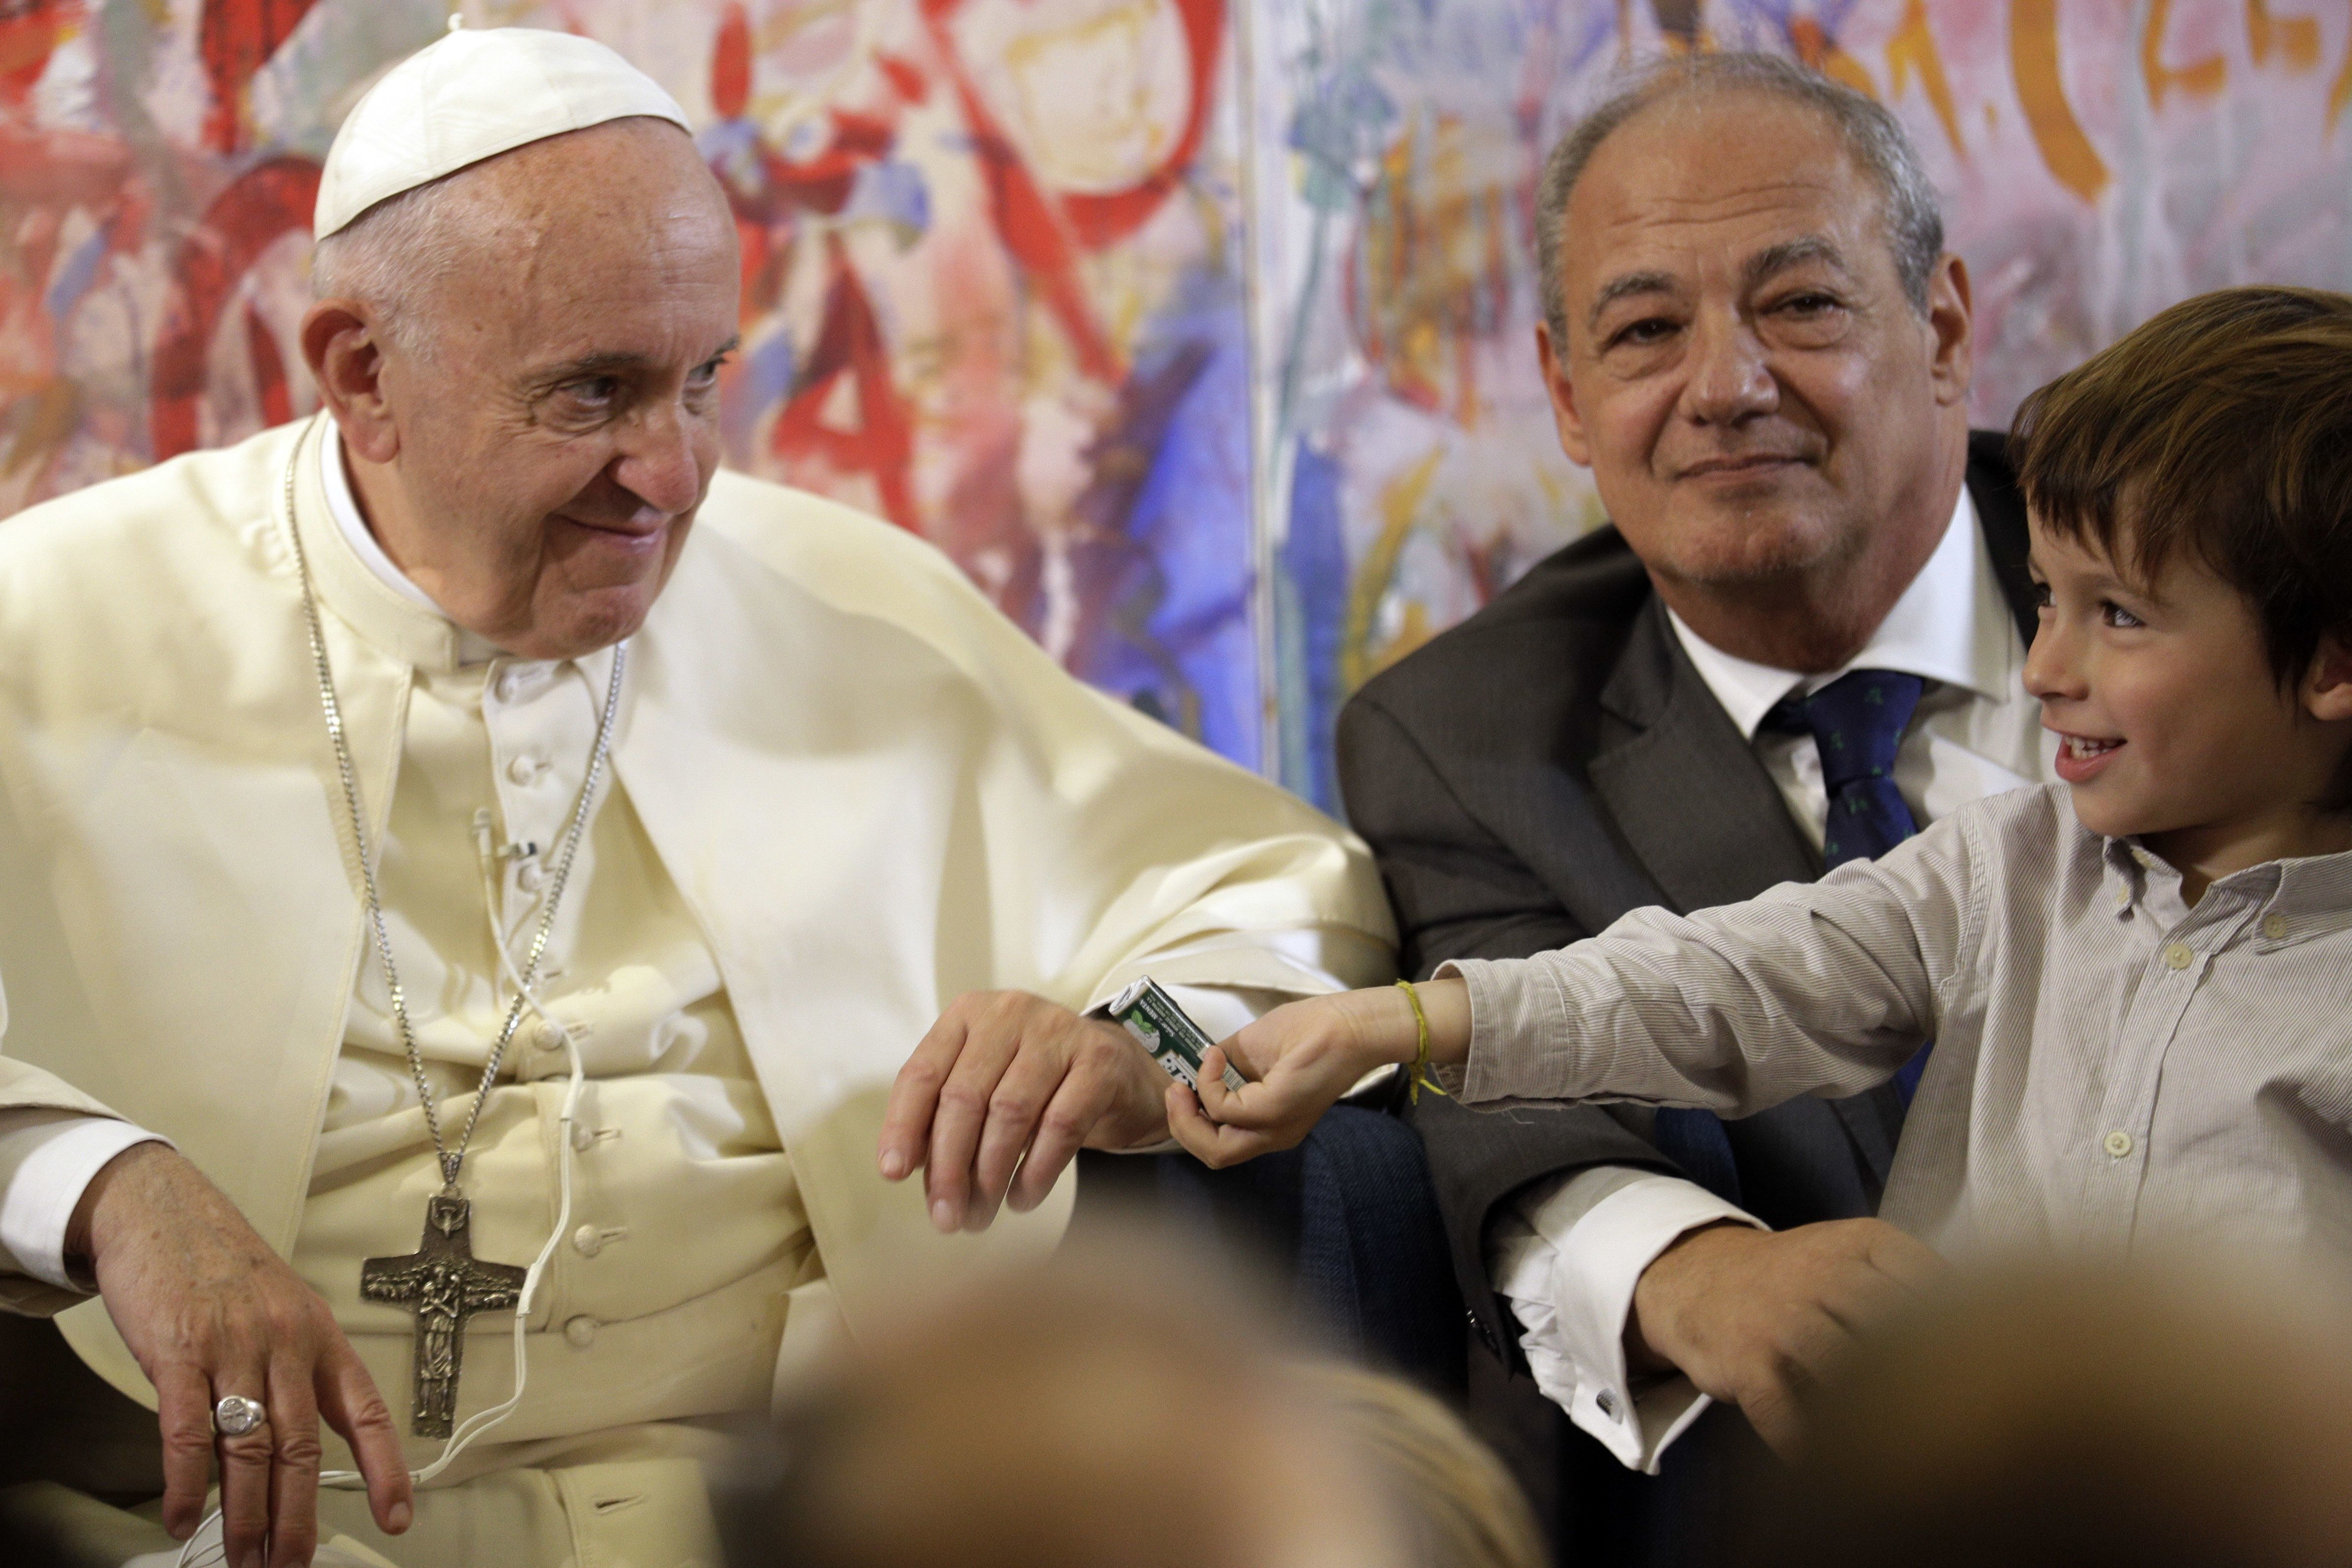 Pope Francis (L) looks at a child as he attends a meeting with members of the Scholas Occurrentes initiative, in Palazzo San